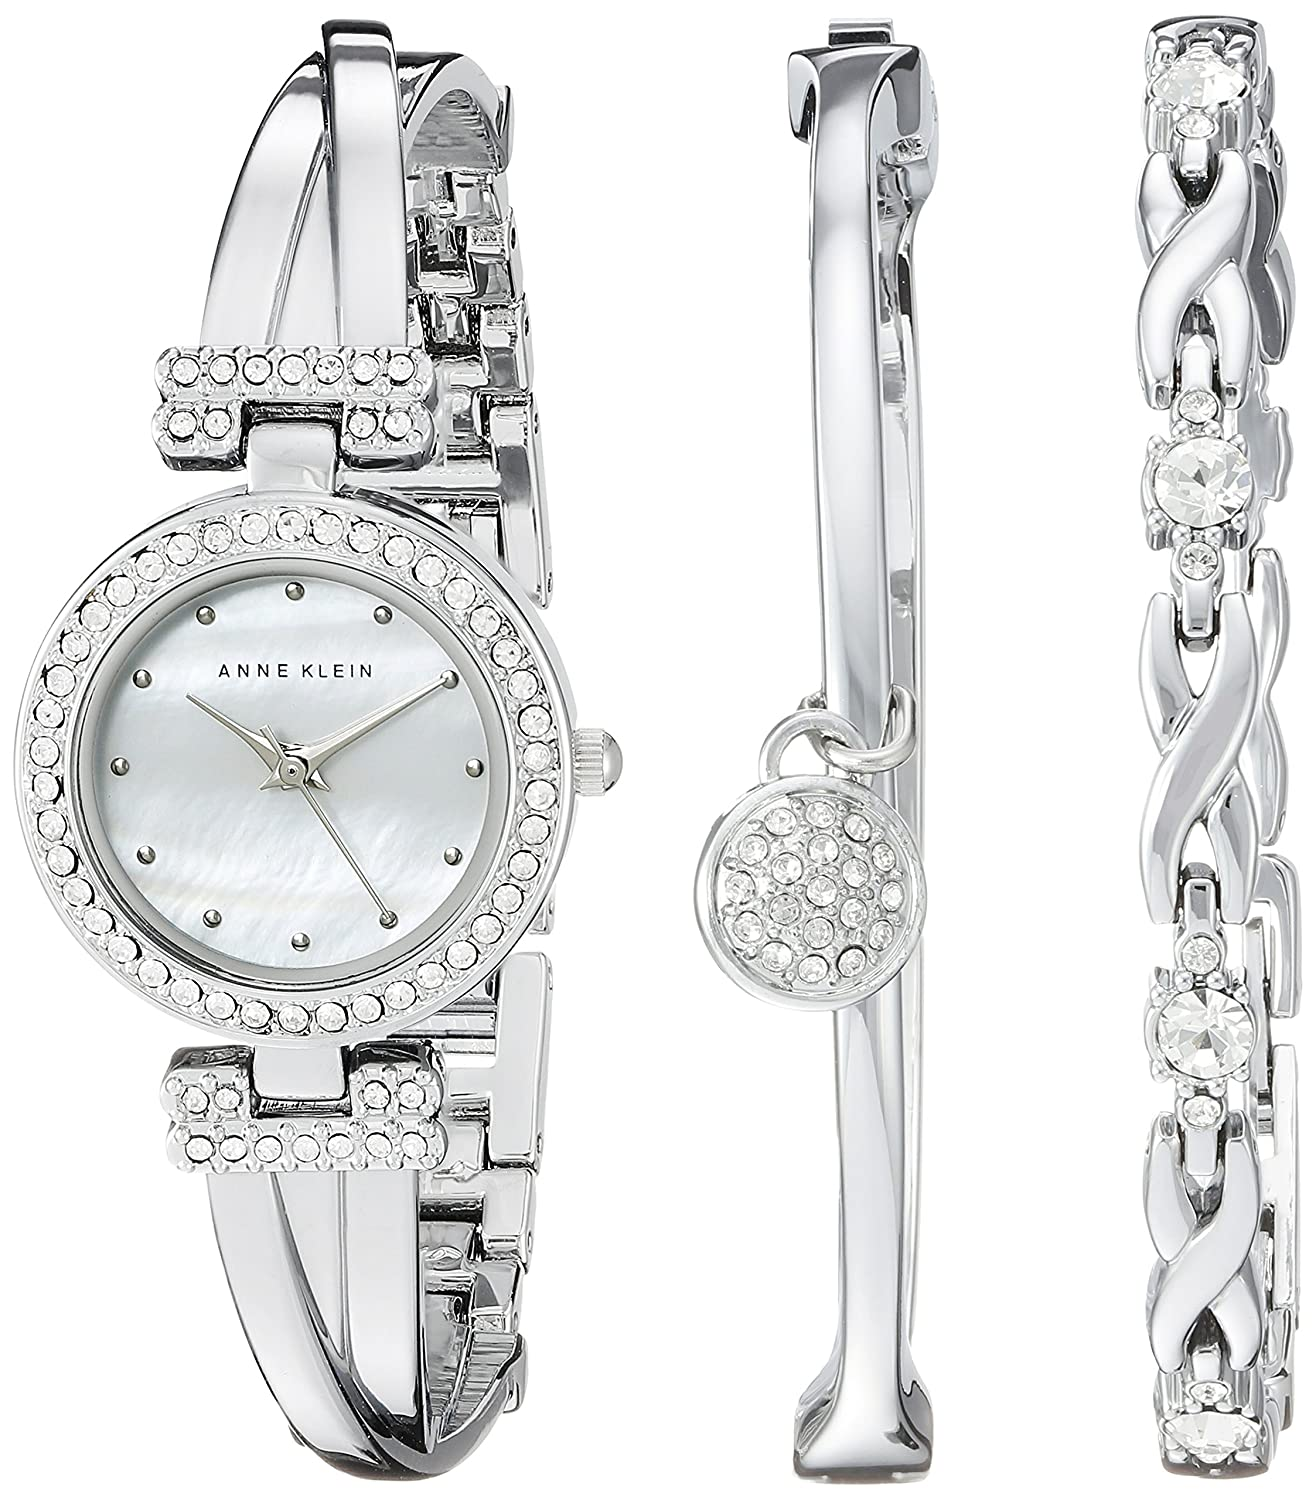 bracelet seksy women buysekonda sekonda rose swarovski johnlewis oblong main at crystal gold pdp watches s online strap watch rsp